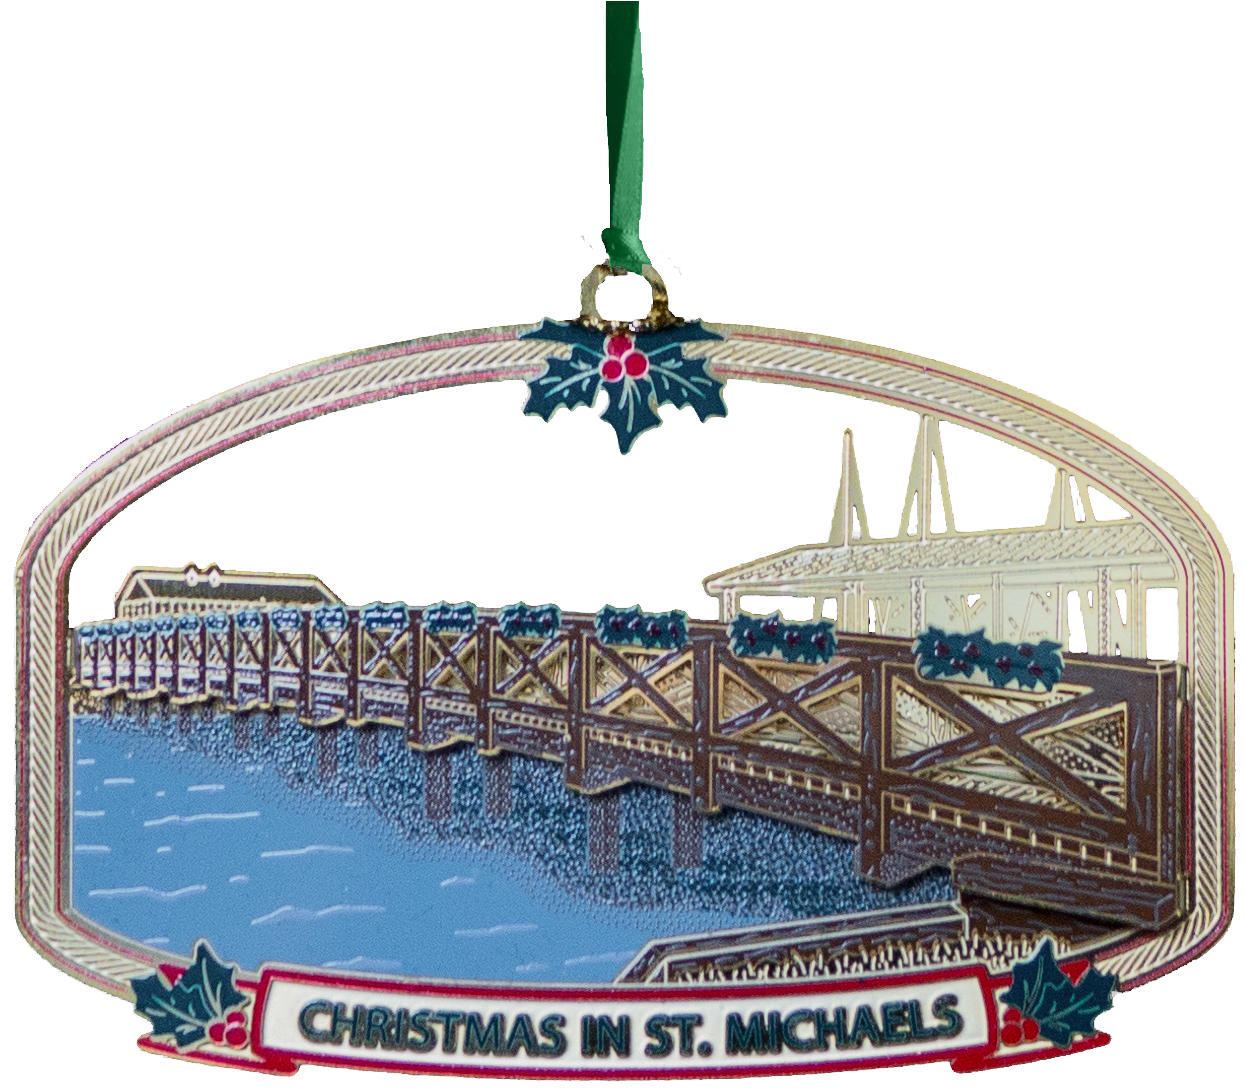 the fifteenth annual christmas in st michaels collectors ornament shows the local landmark honeymoon bridge a popular footbridge connecting the town with - Christmas In St Michaels